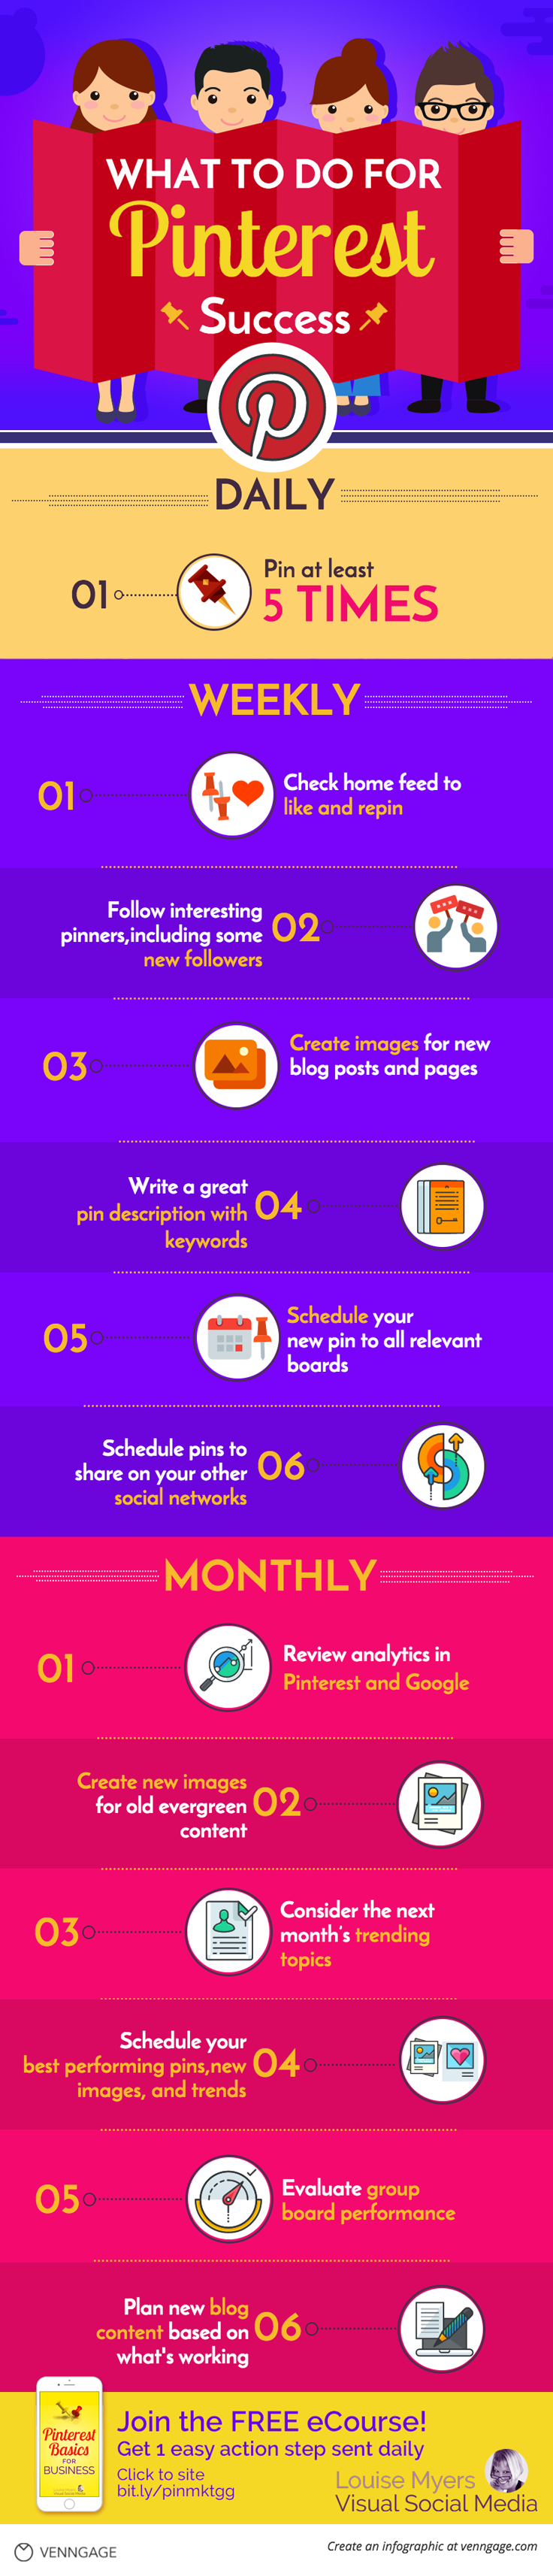 Craving Pinterest marketing success? There's ONE thing you need to do to succeed on Pinterest: be consistent. Learn the steps on a cool infographic!